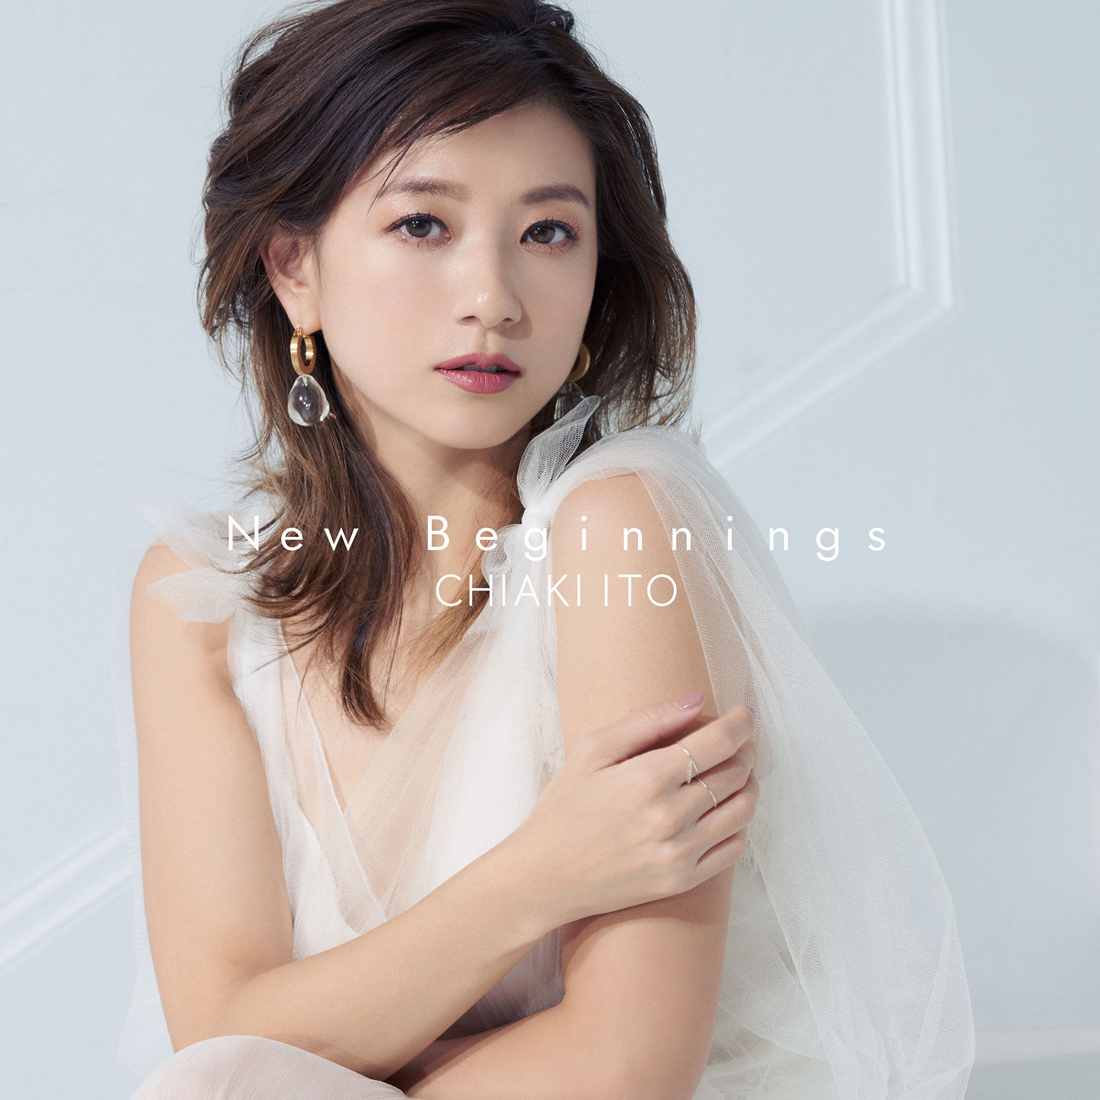 20181213.2332.3 Chiaki Ito - New Beginnings (M4A) cover.jpg